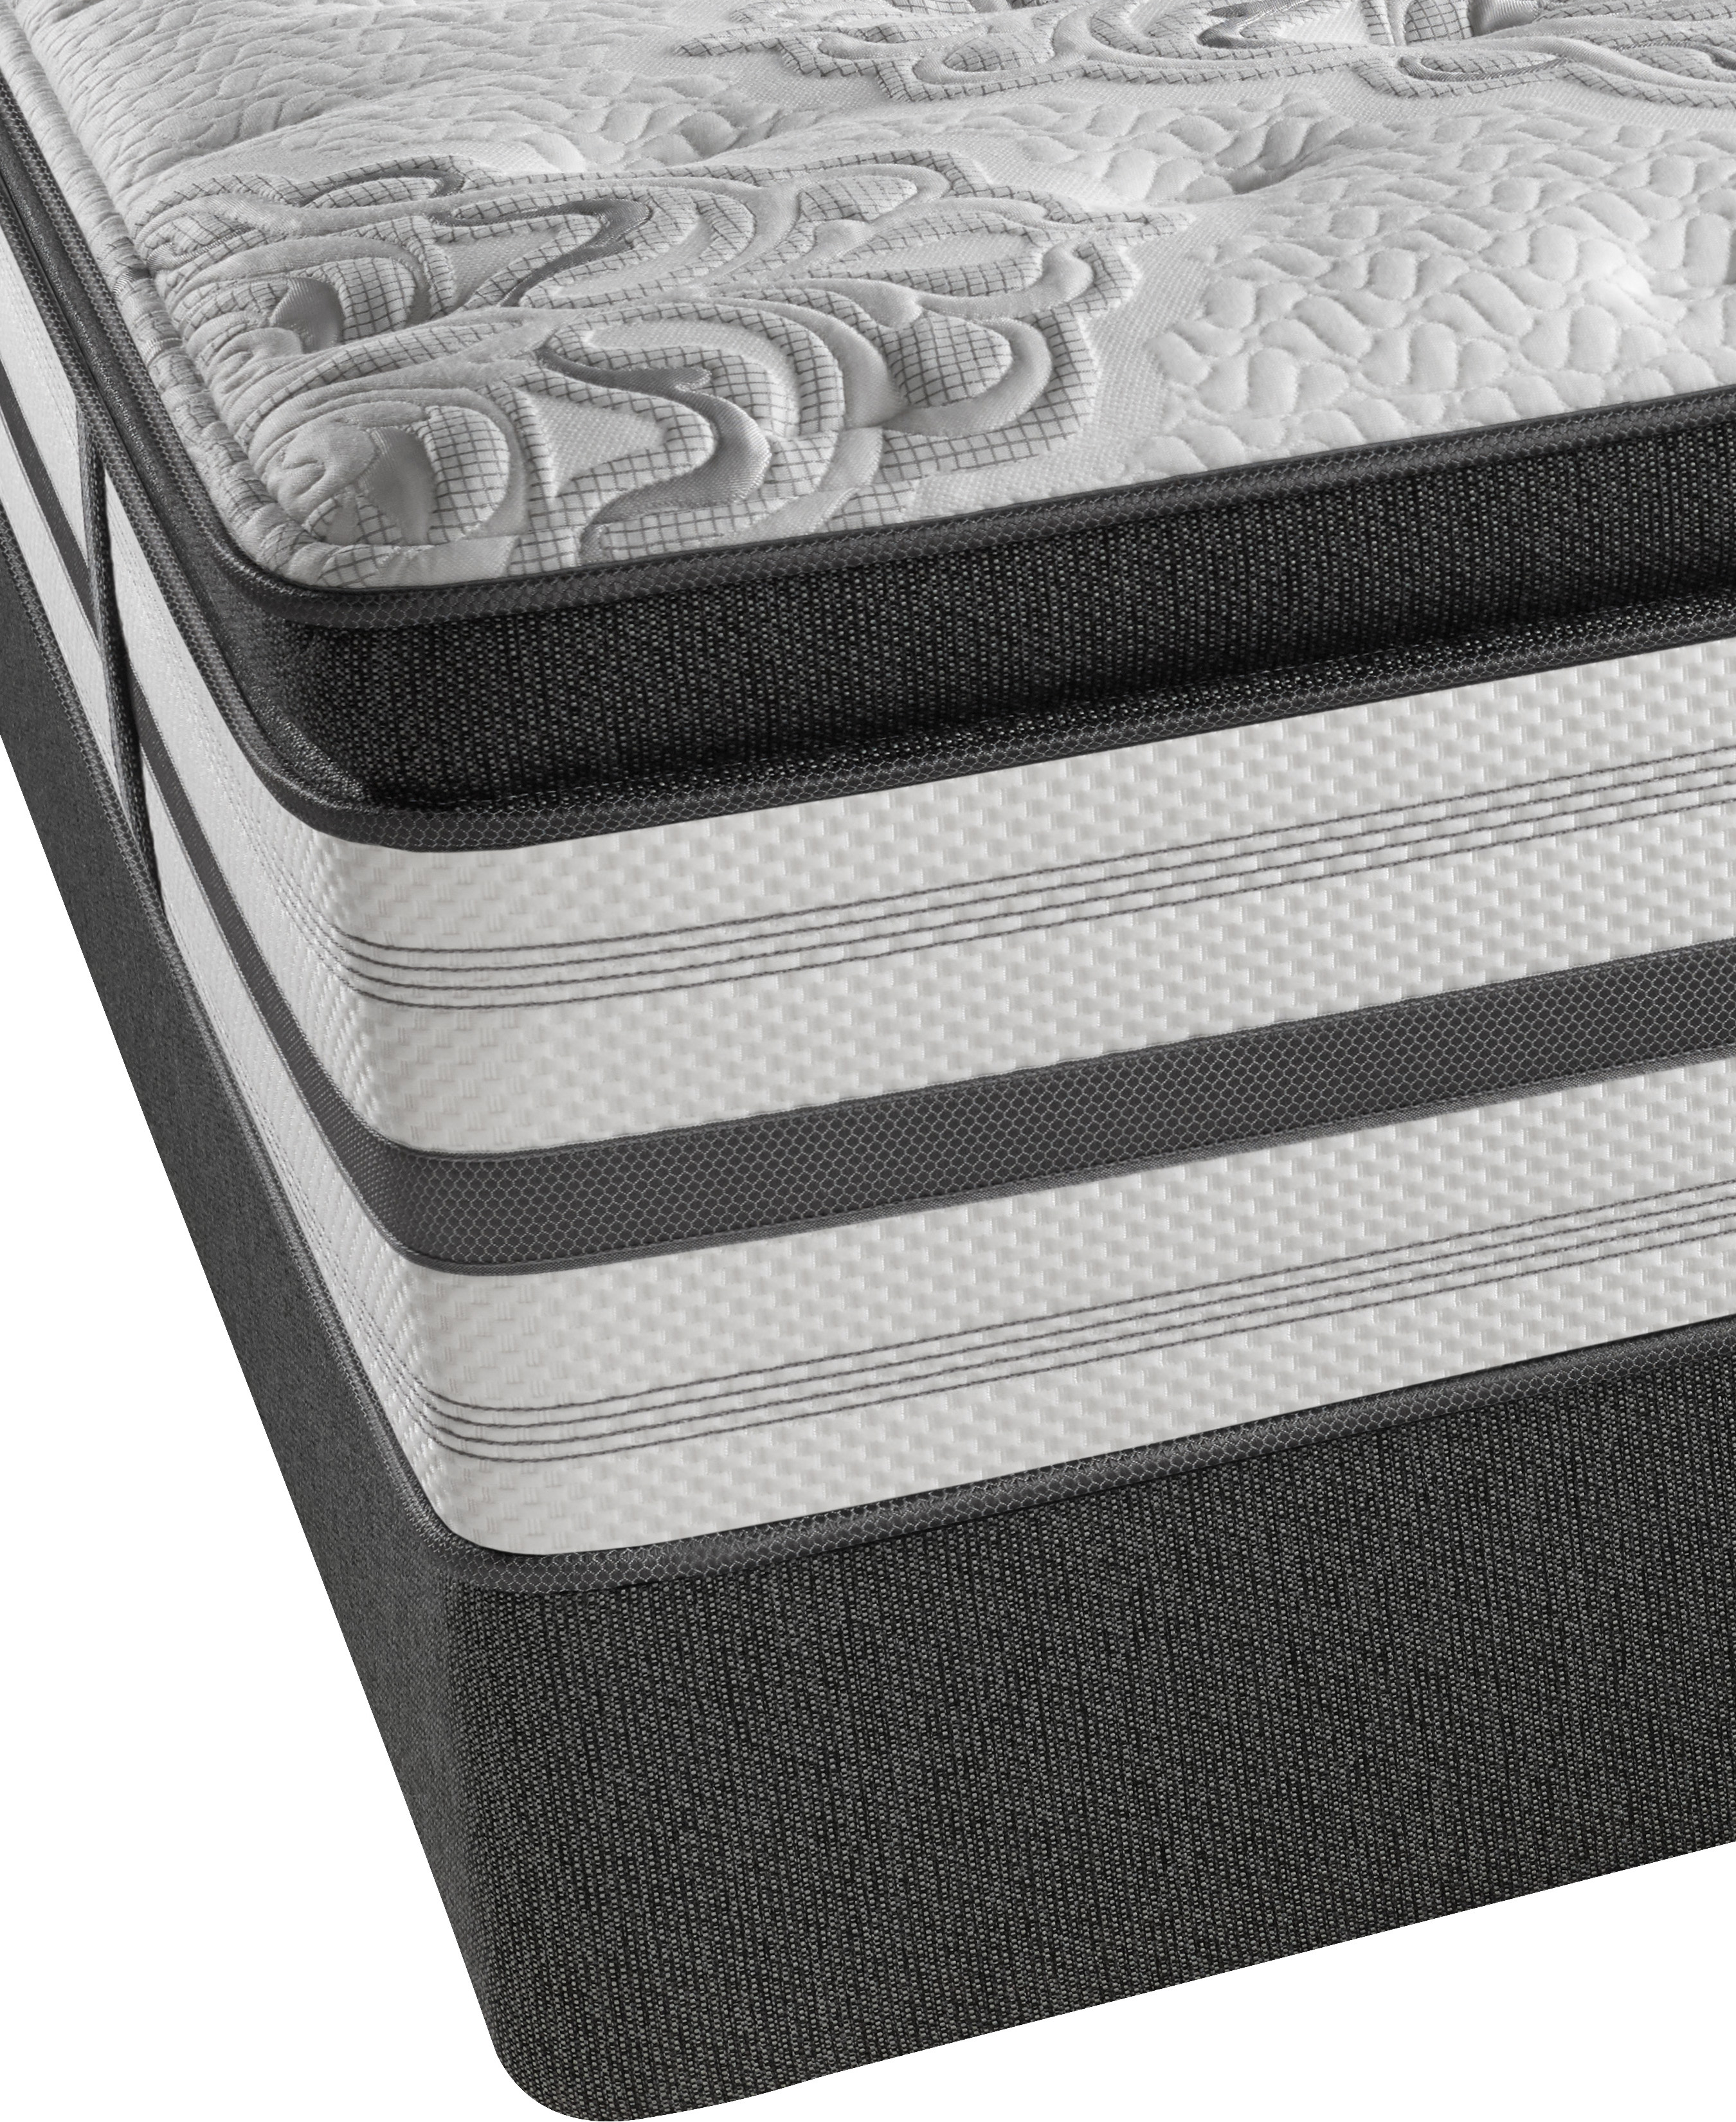 Simmons Beautyrest Platinum Chloe Luxury Firm Pillowtop